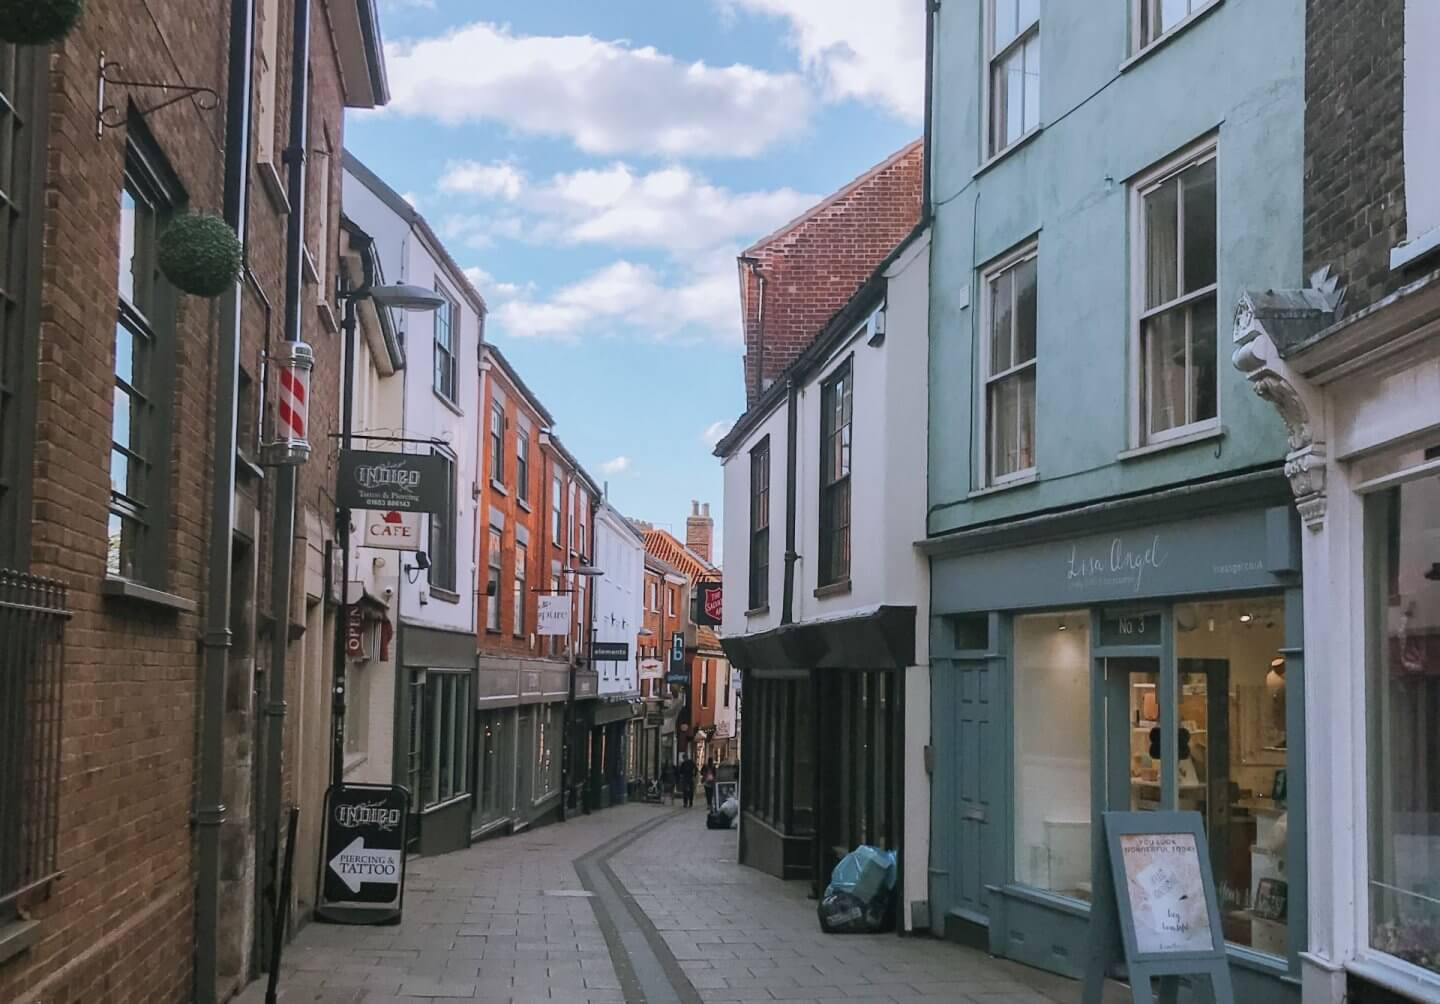 Image of Lower Goat Lane in the Norwich Lanes